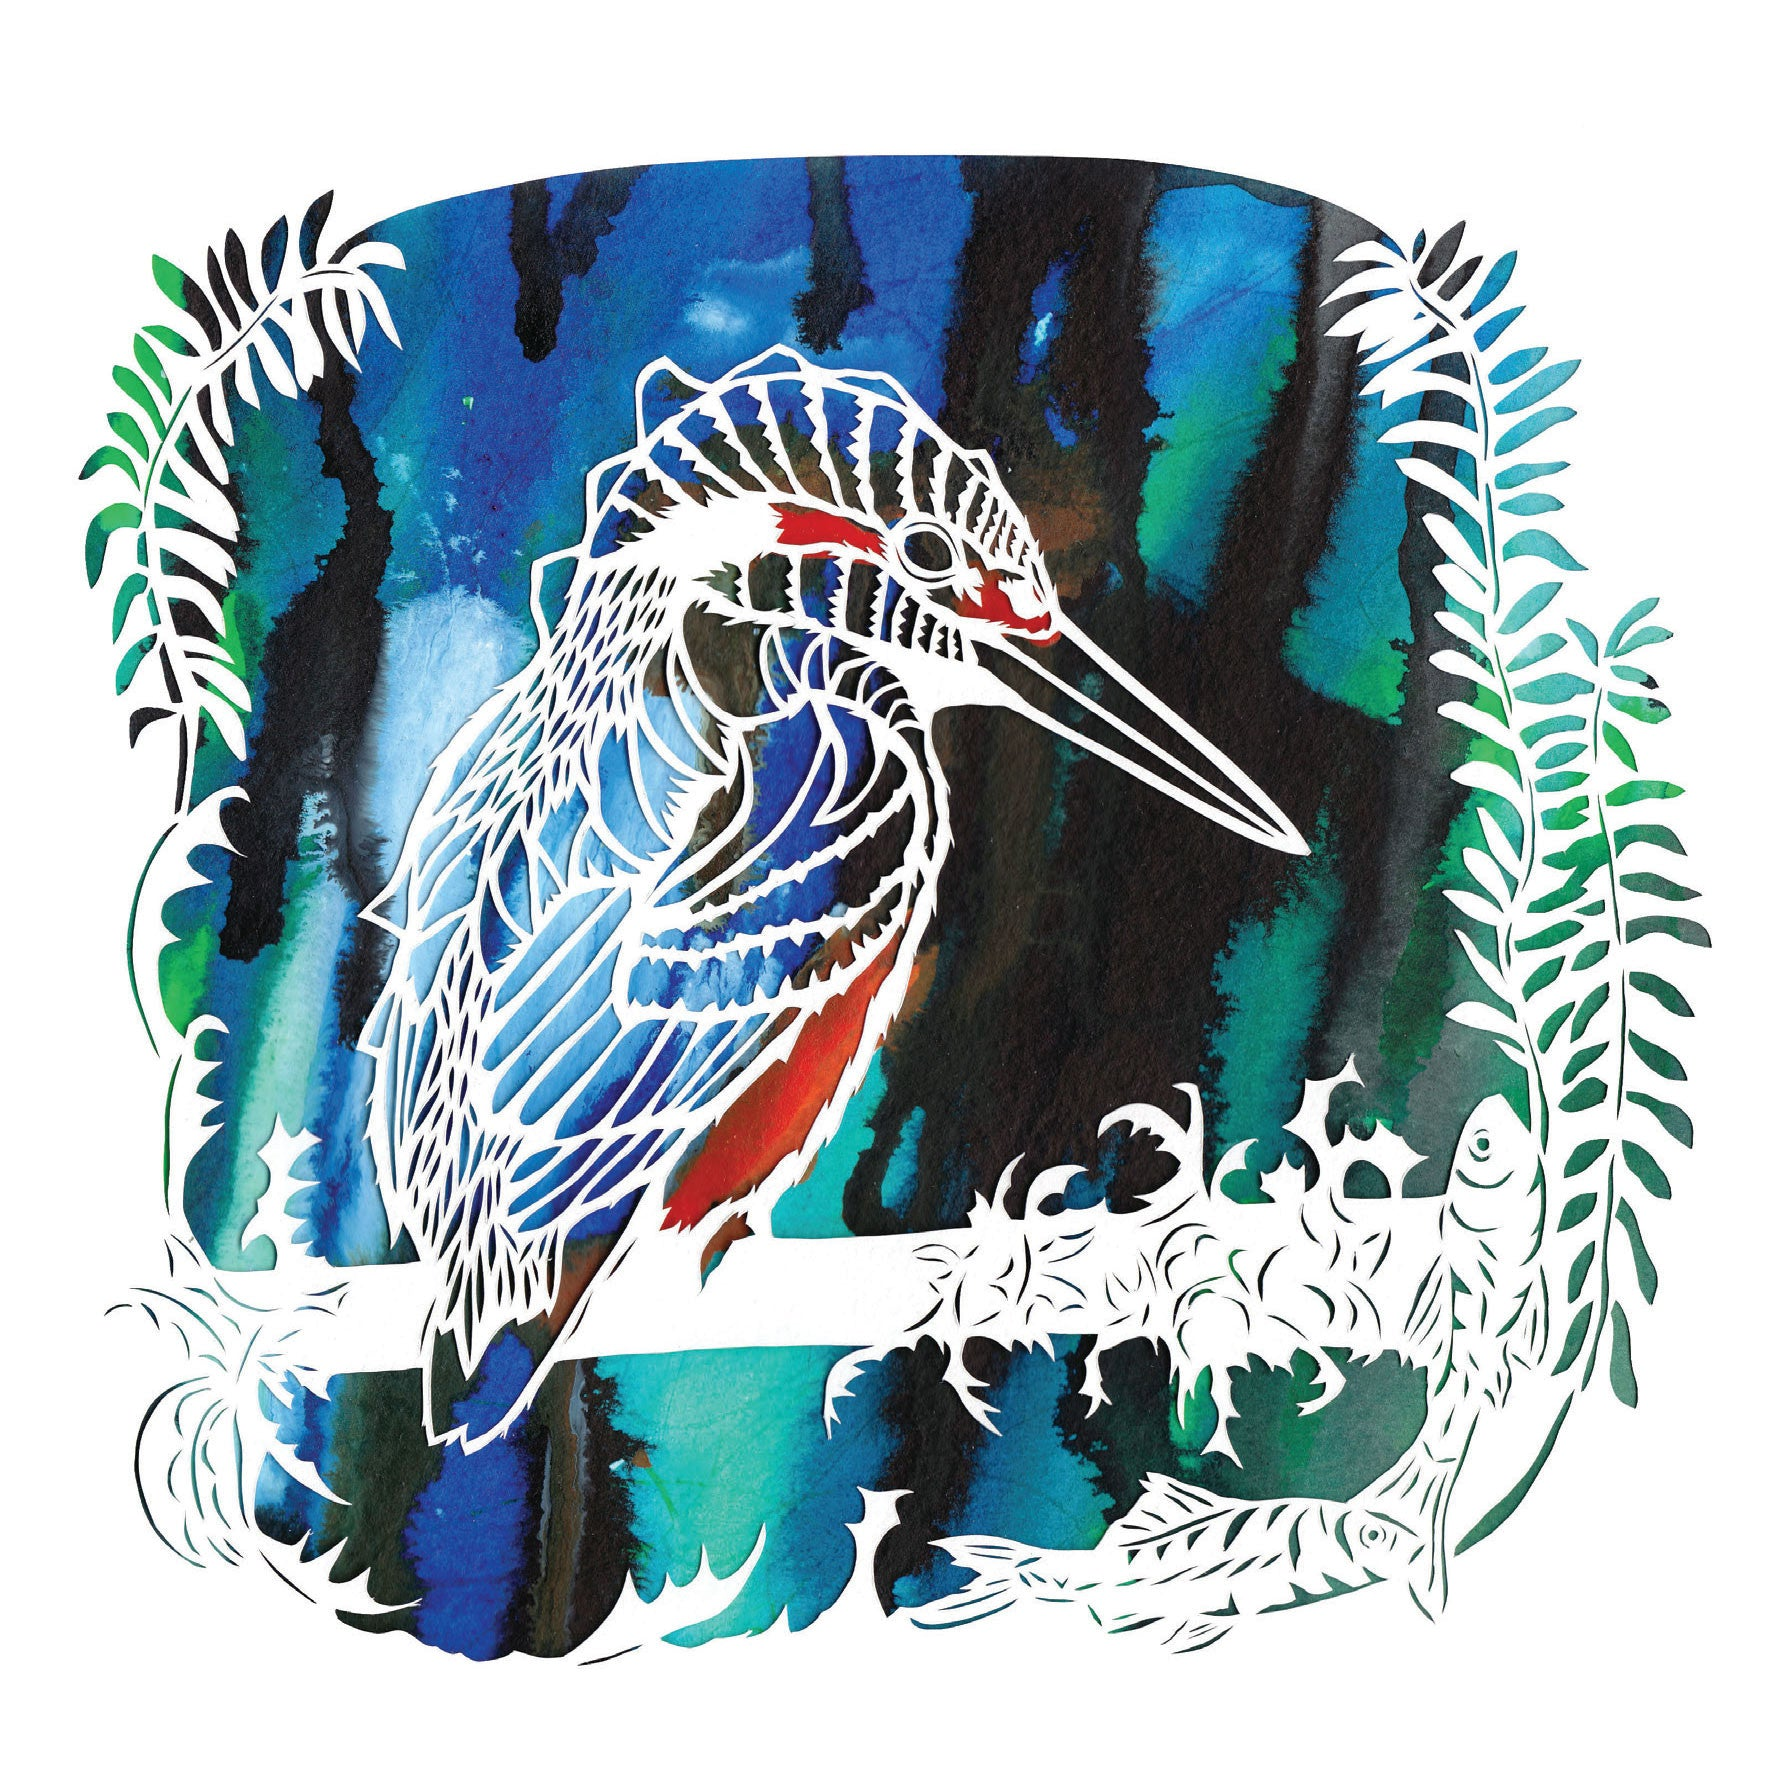 Art Greeting Card, Papercutting and Ink, Kingfisher